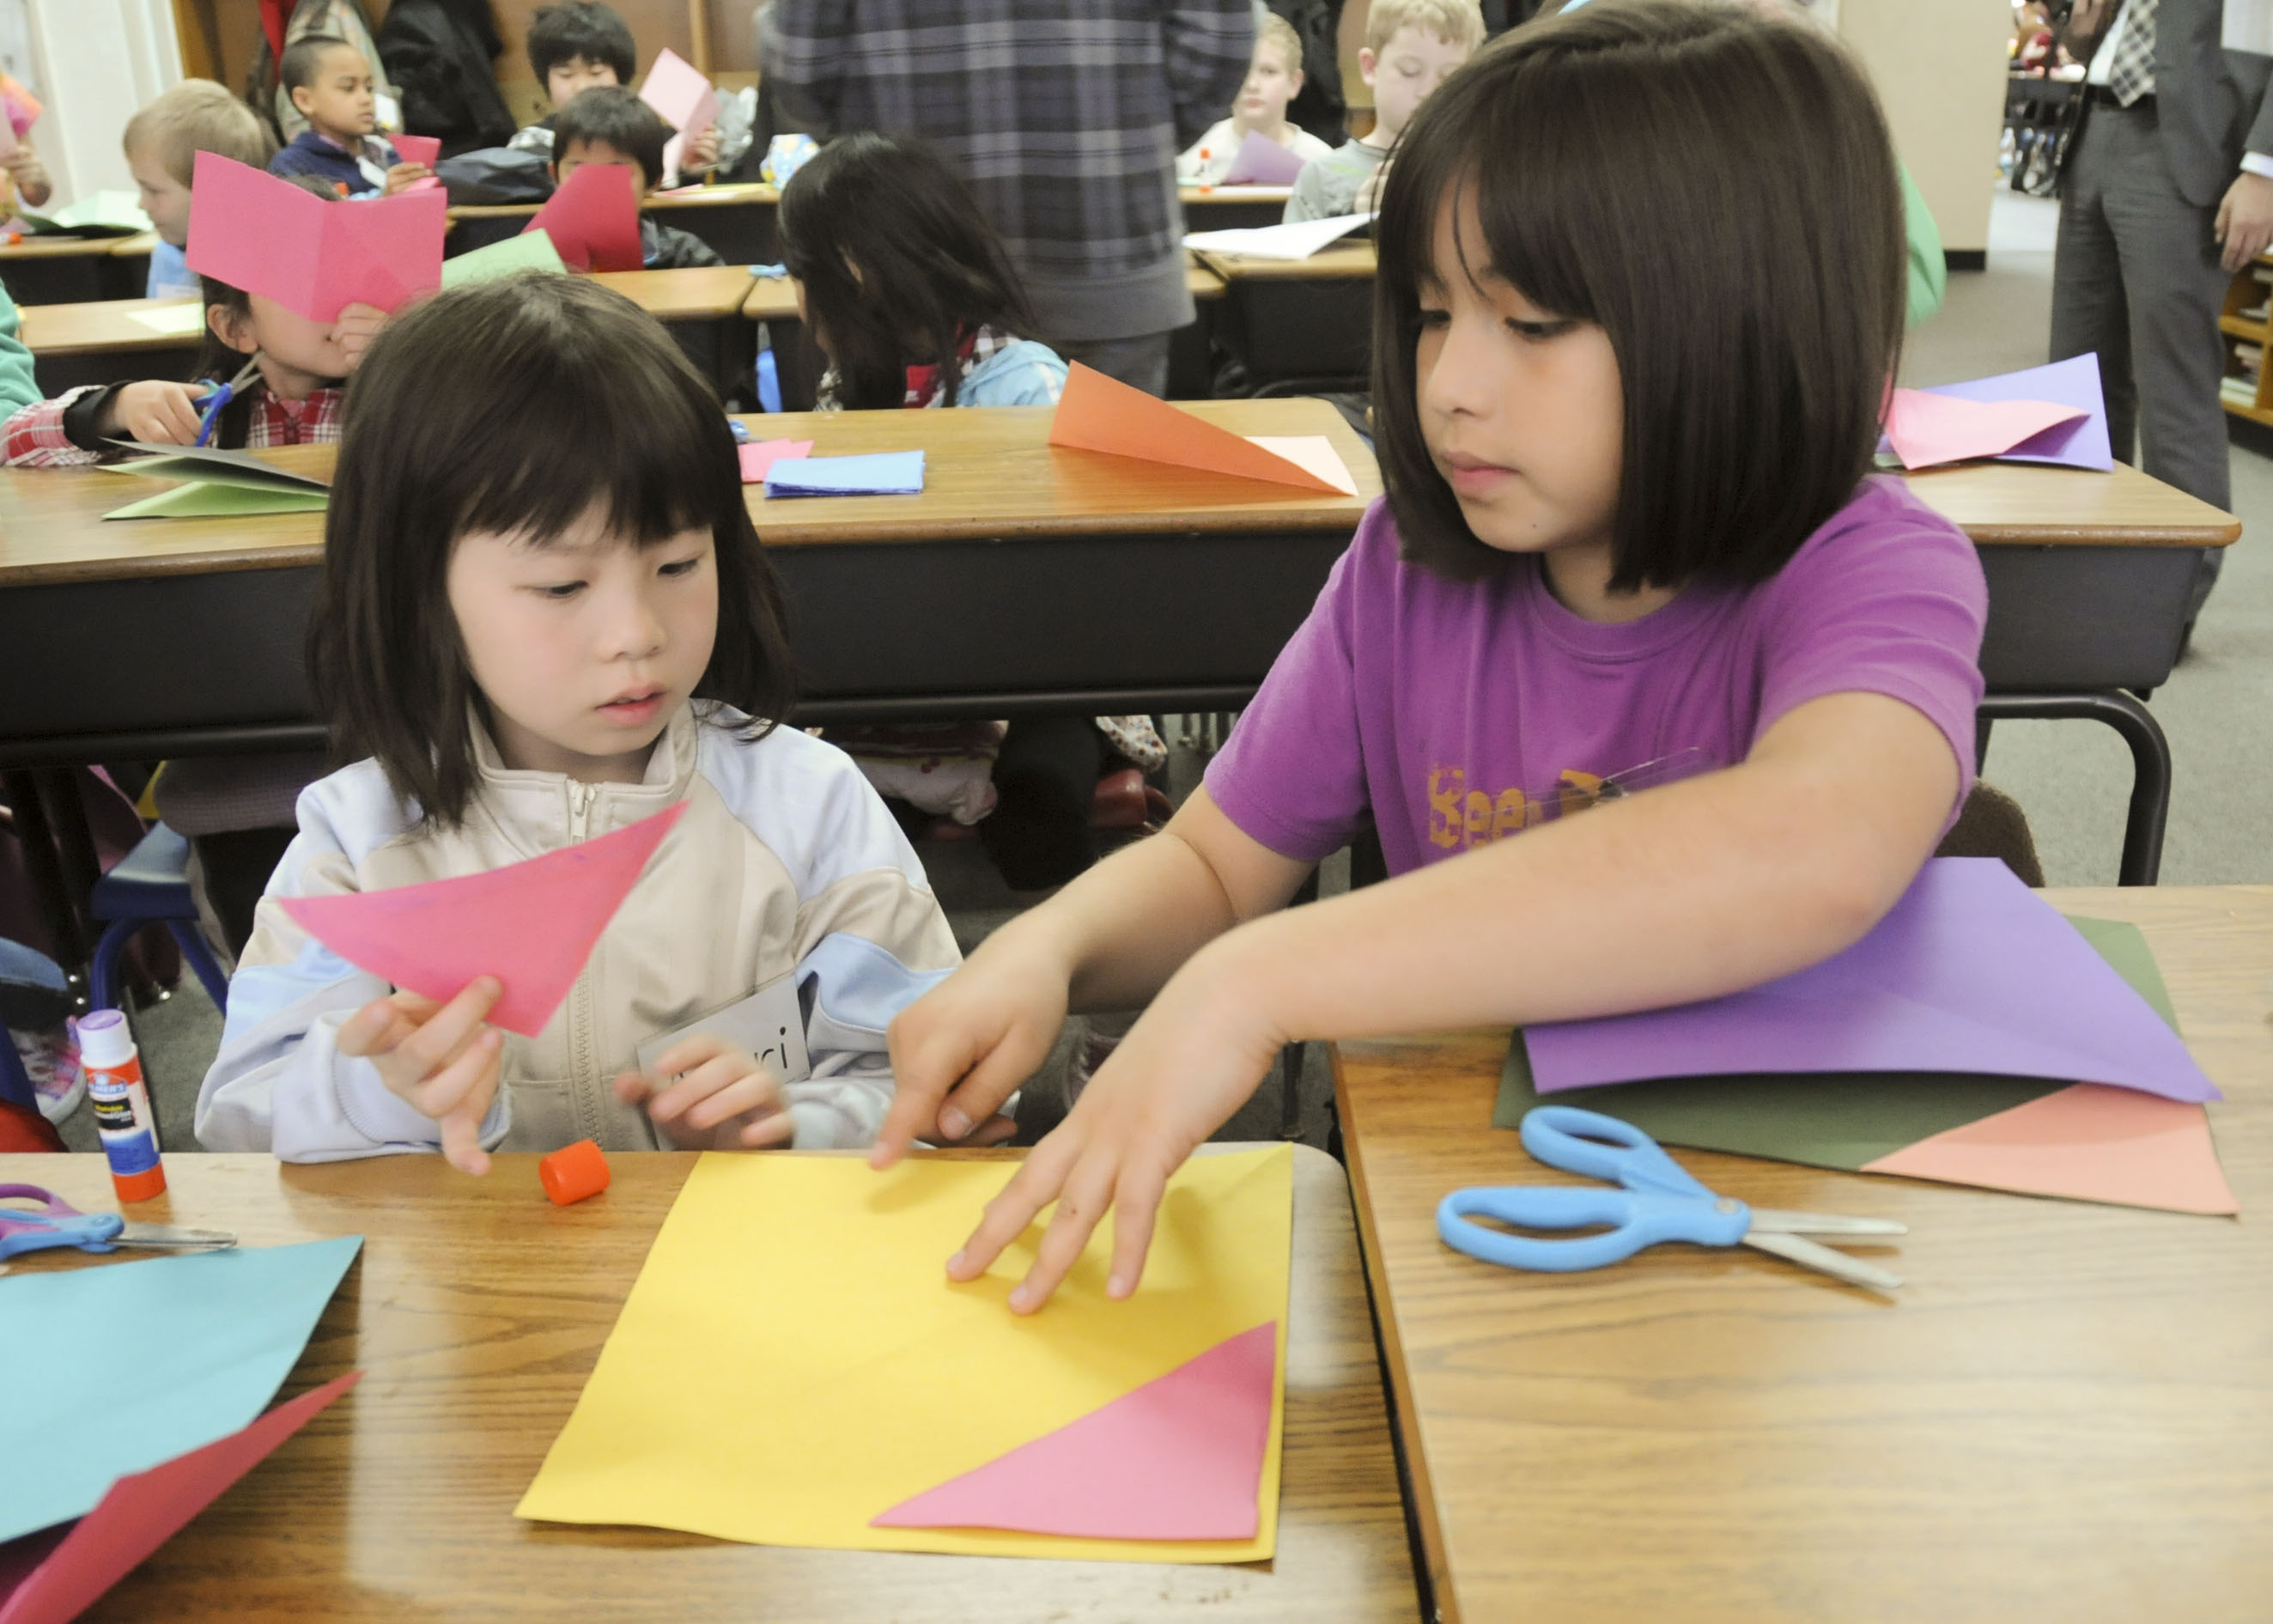 Japanese Children Experience American School For The Day